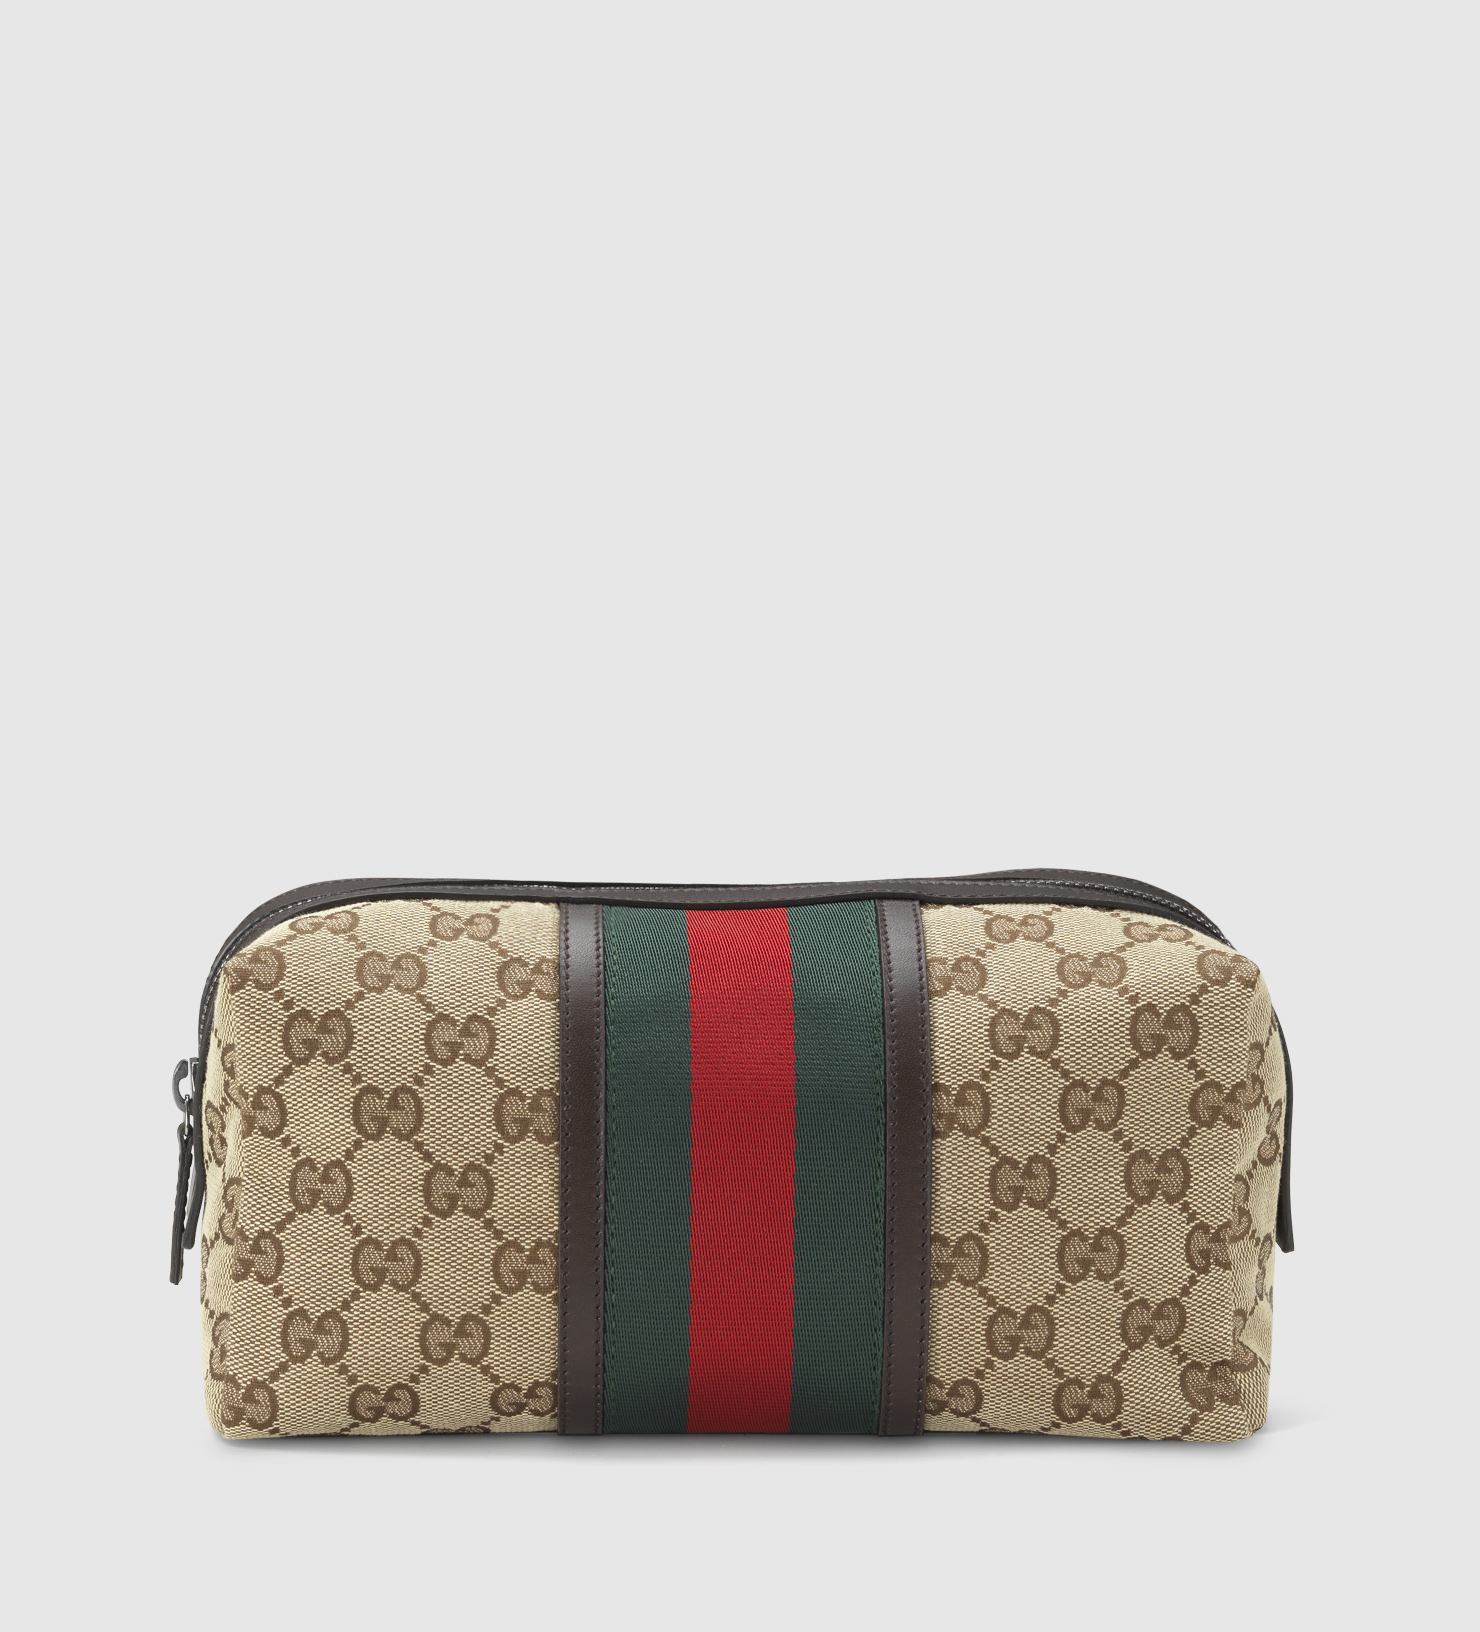 Gucci Original Gg Large Cosmetic Case In Natural Lyst